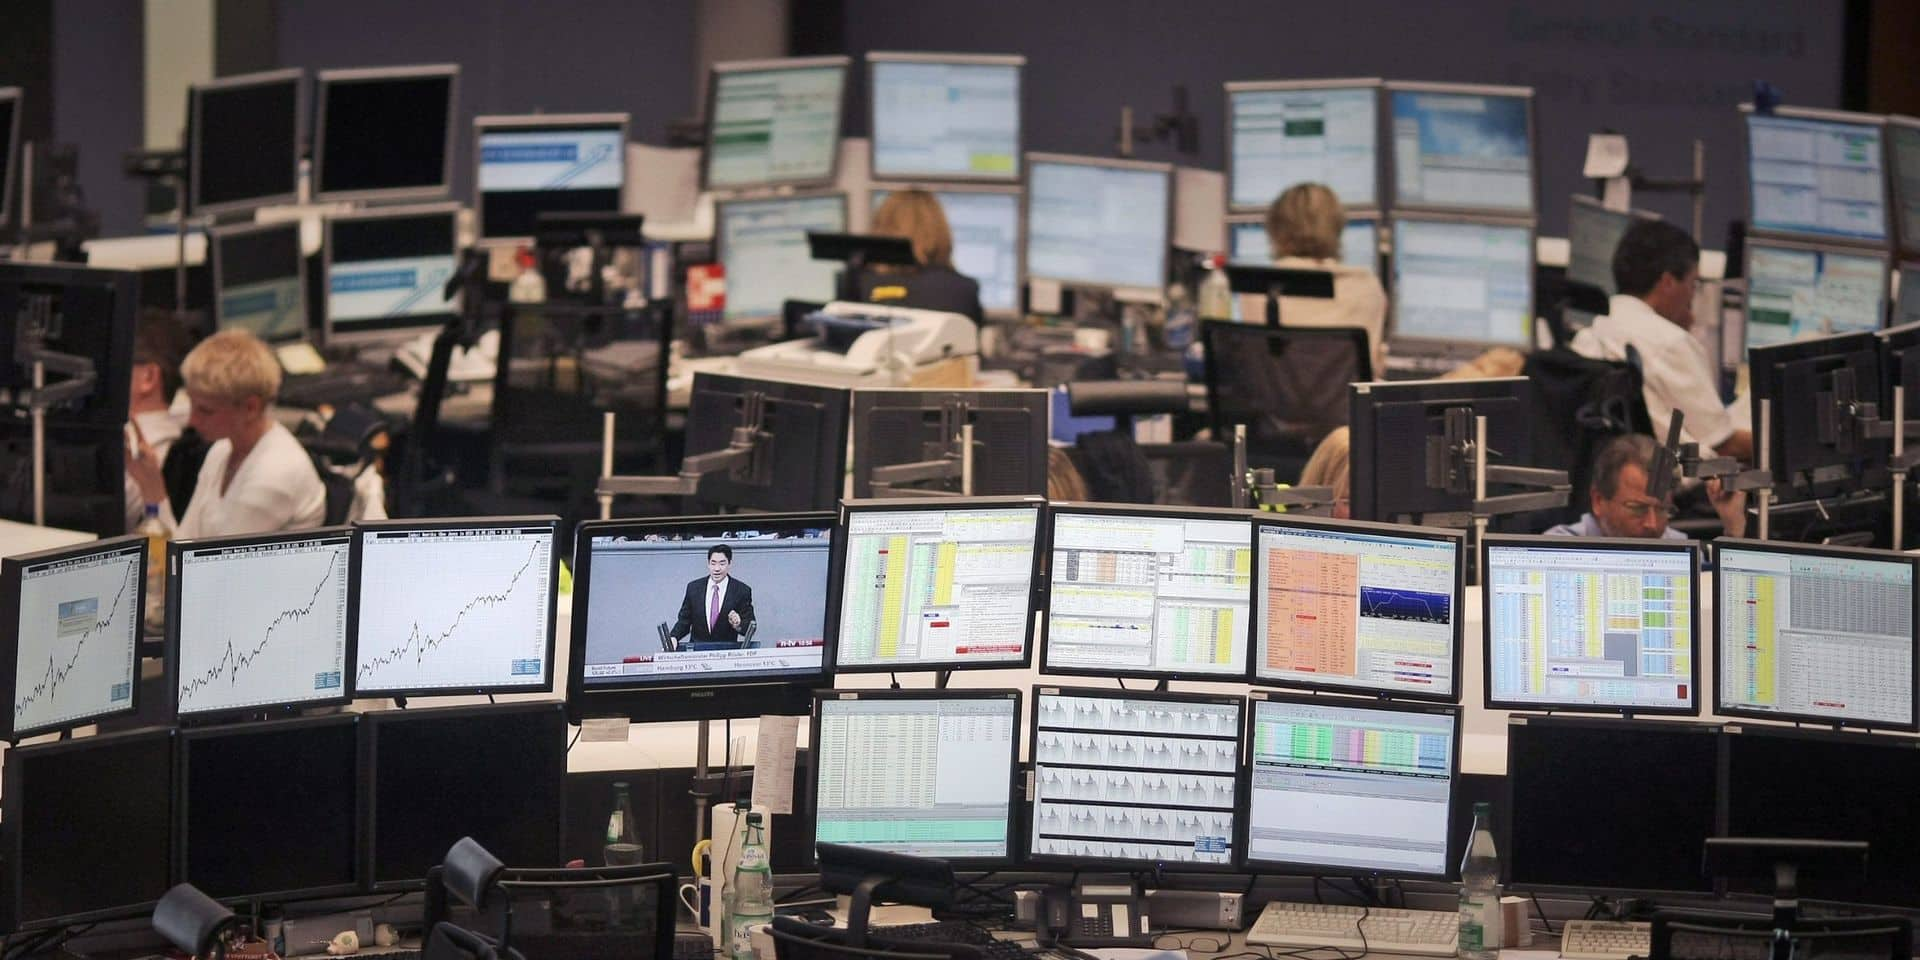 Bourse Francfort Allemagne traders marché actions